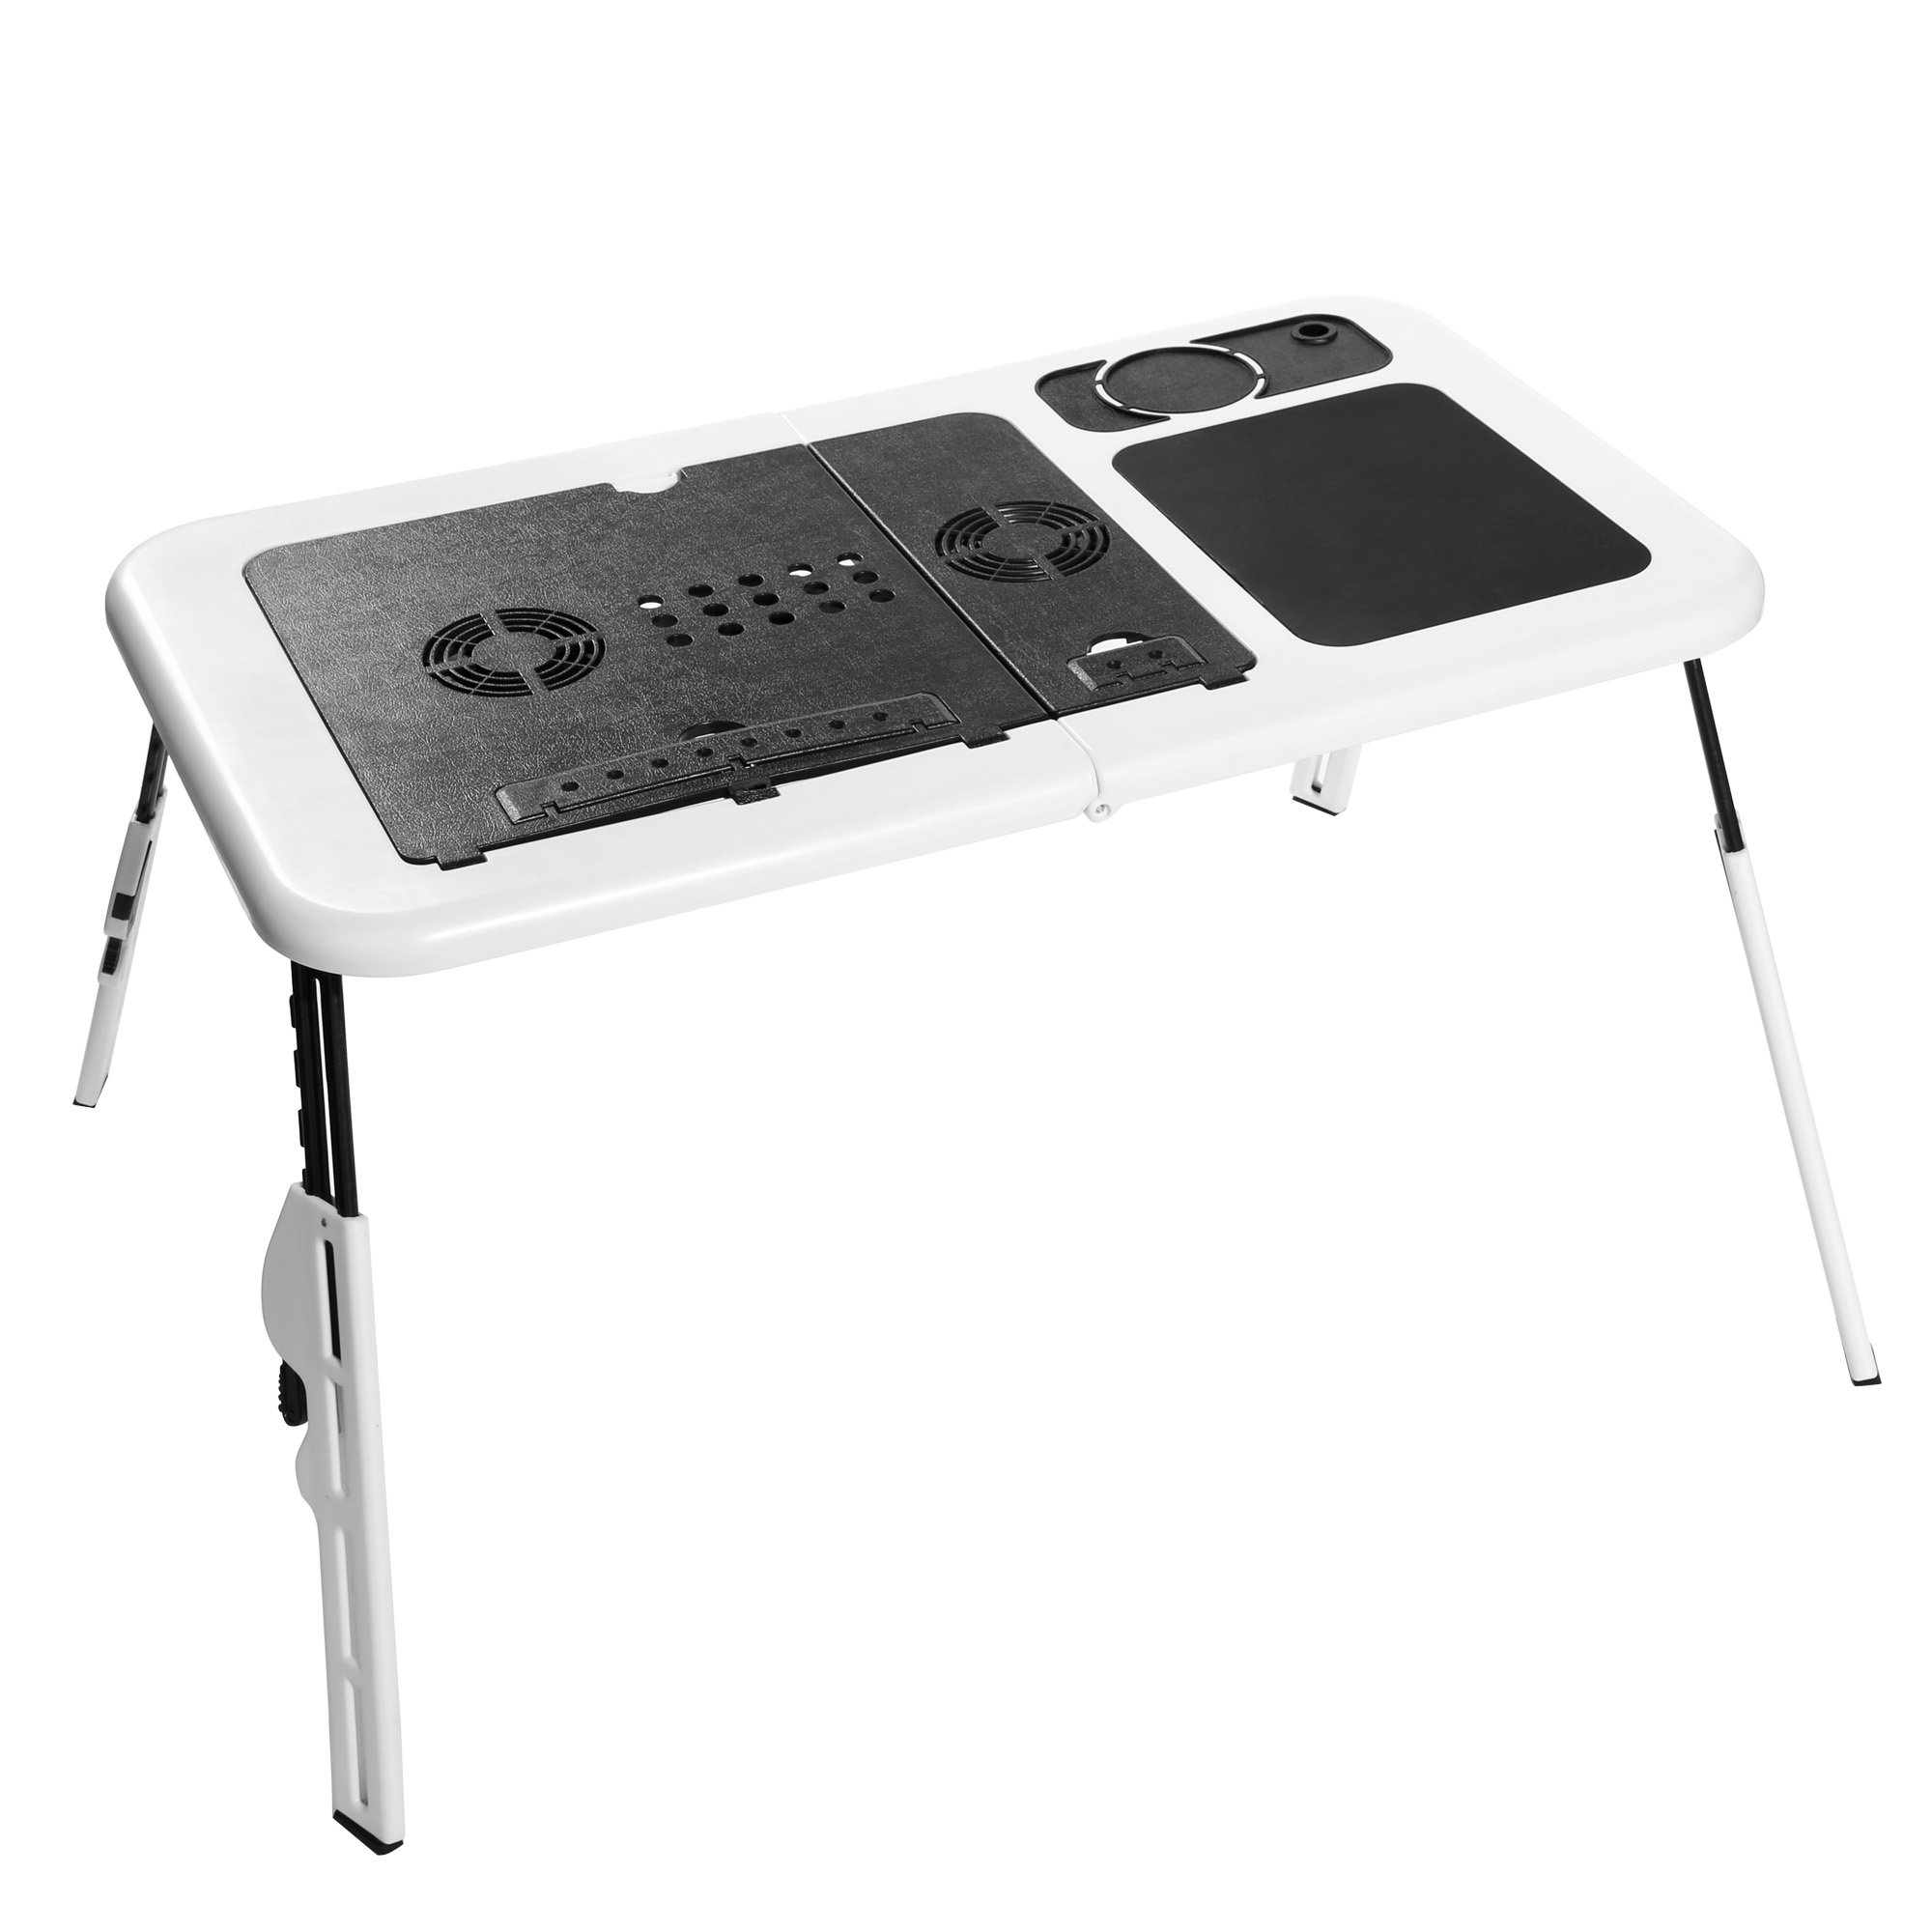 Pagacat Foldable Laptop Table,Portable Adjustable Laptop Desk Laptop Stand for Bed with Cooling Fan and Mouse Pad(US Stock) (Type1)